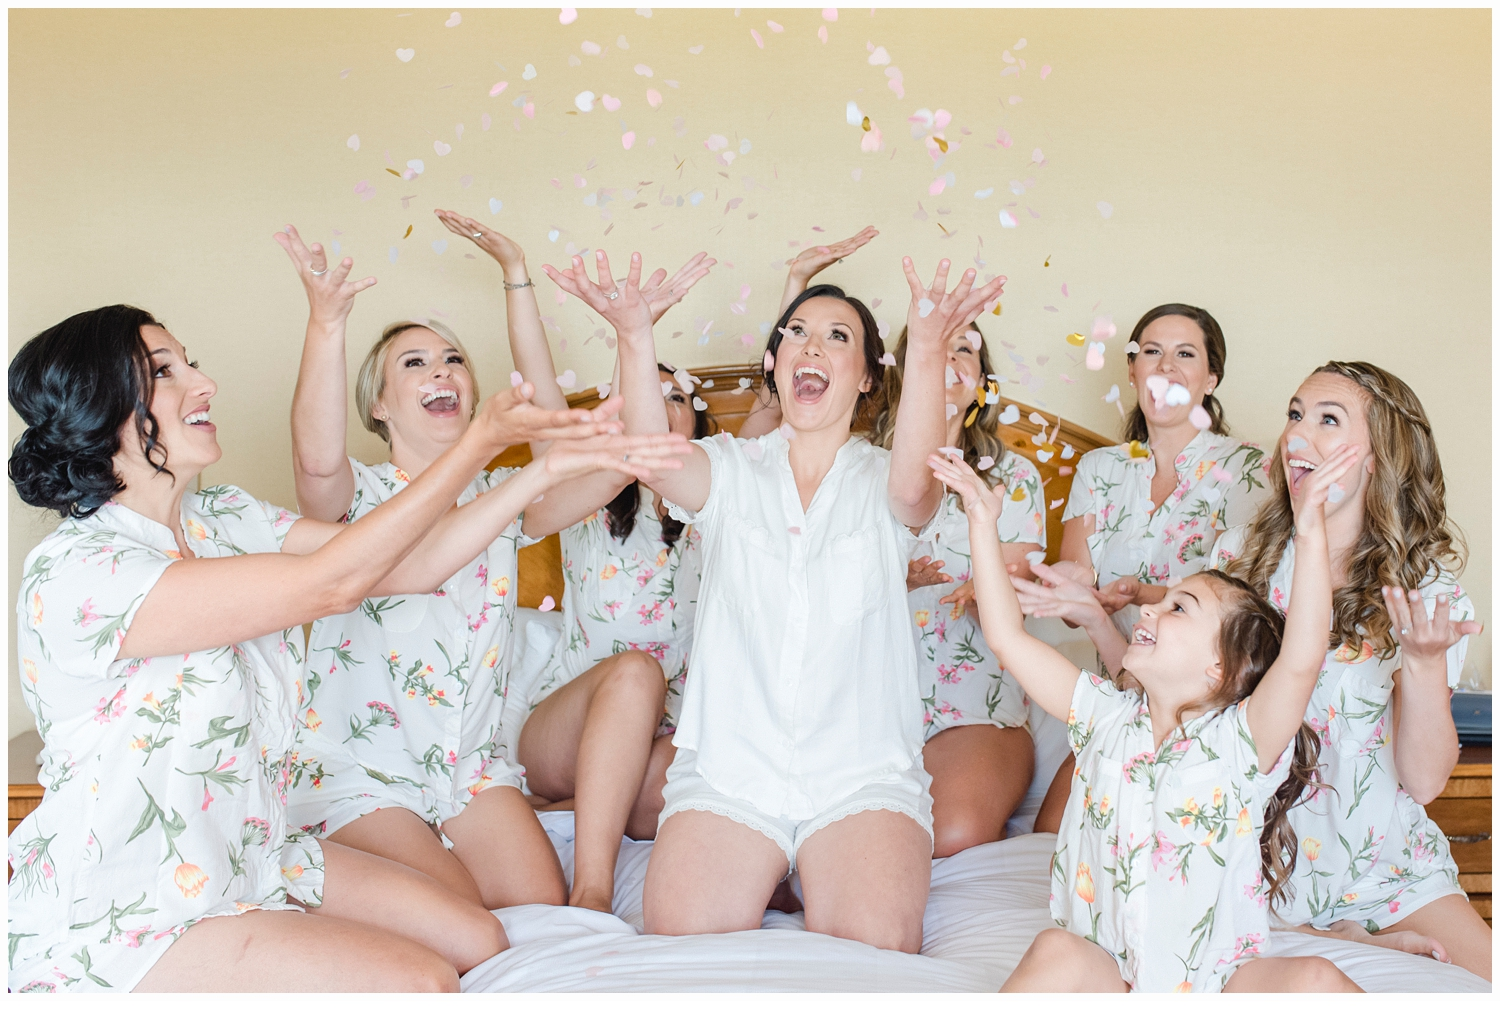 bridesmaids throwing confetti in the air